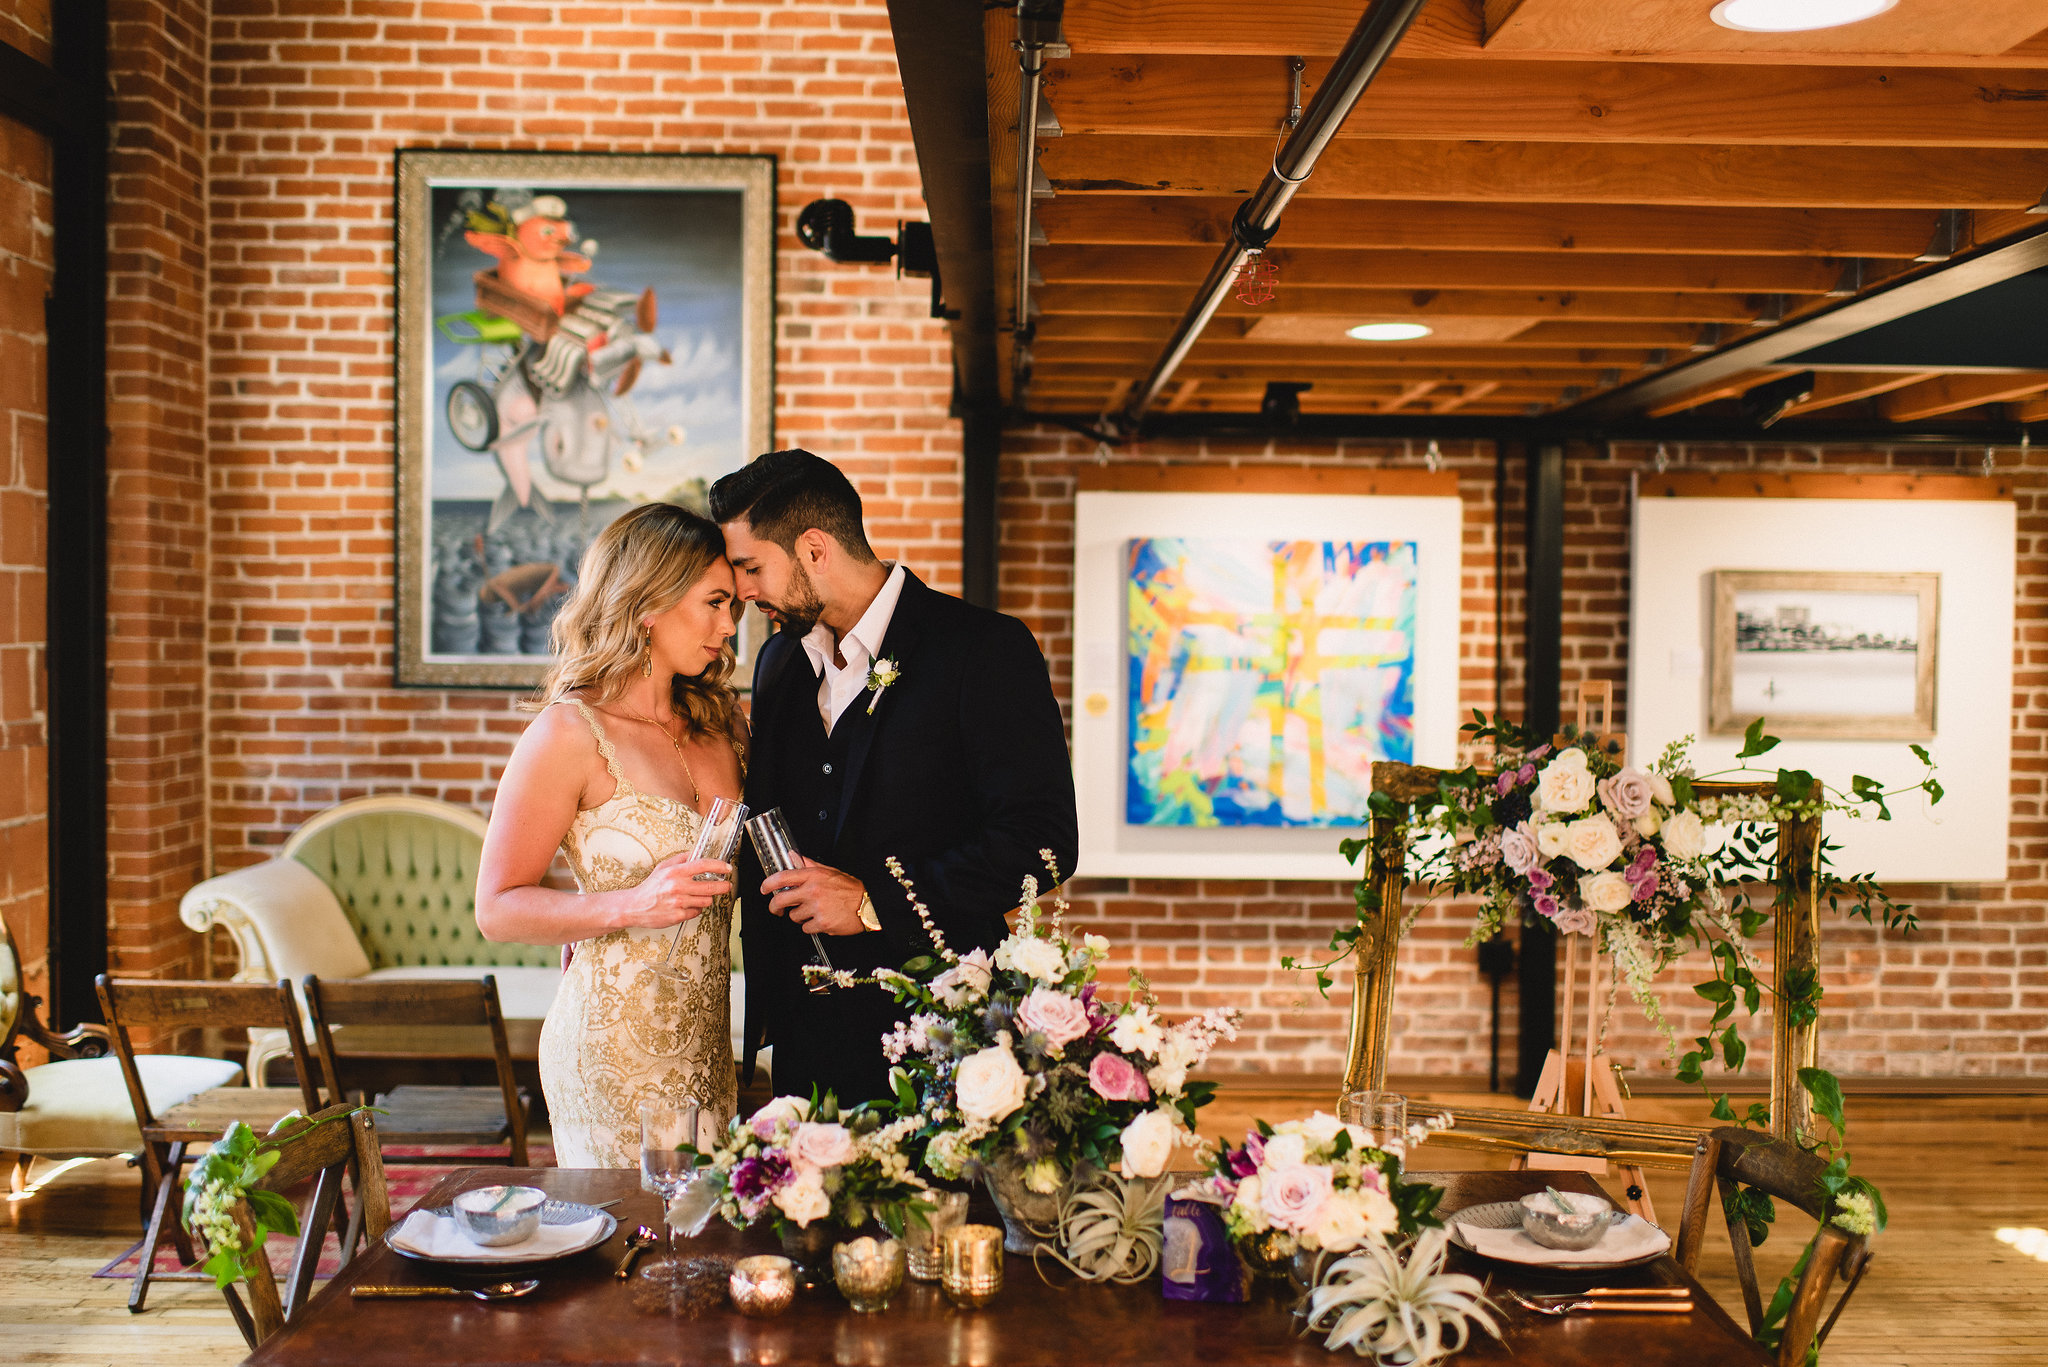 Weddings in Downtown San Diego's Gaslamp Quarter